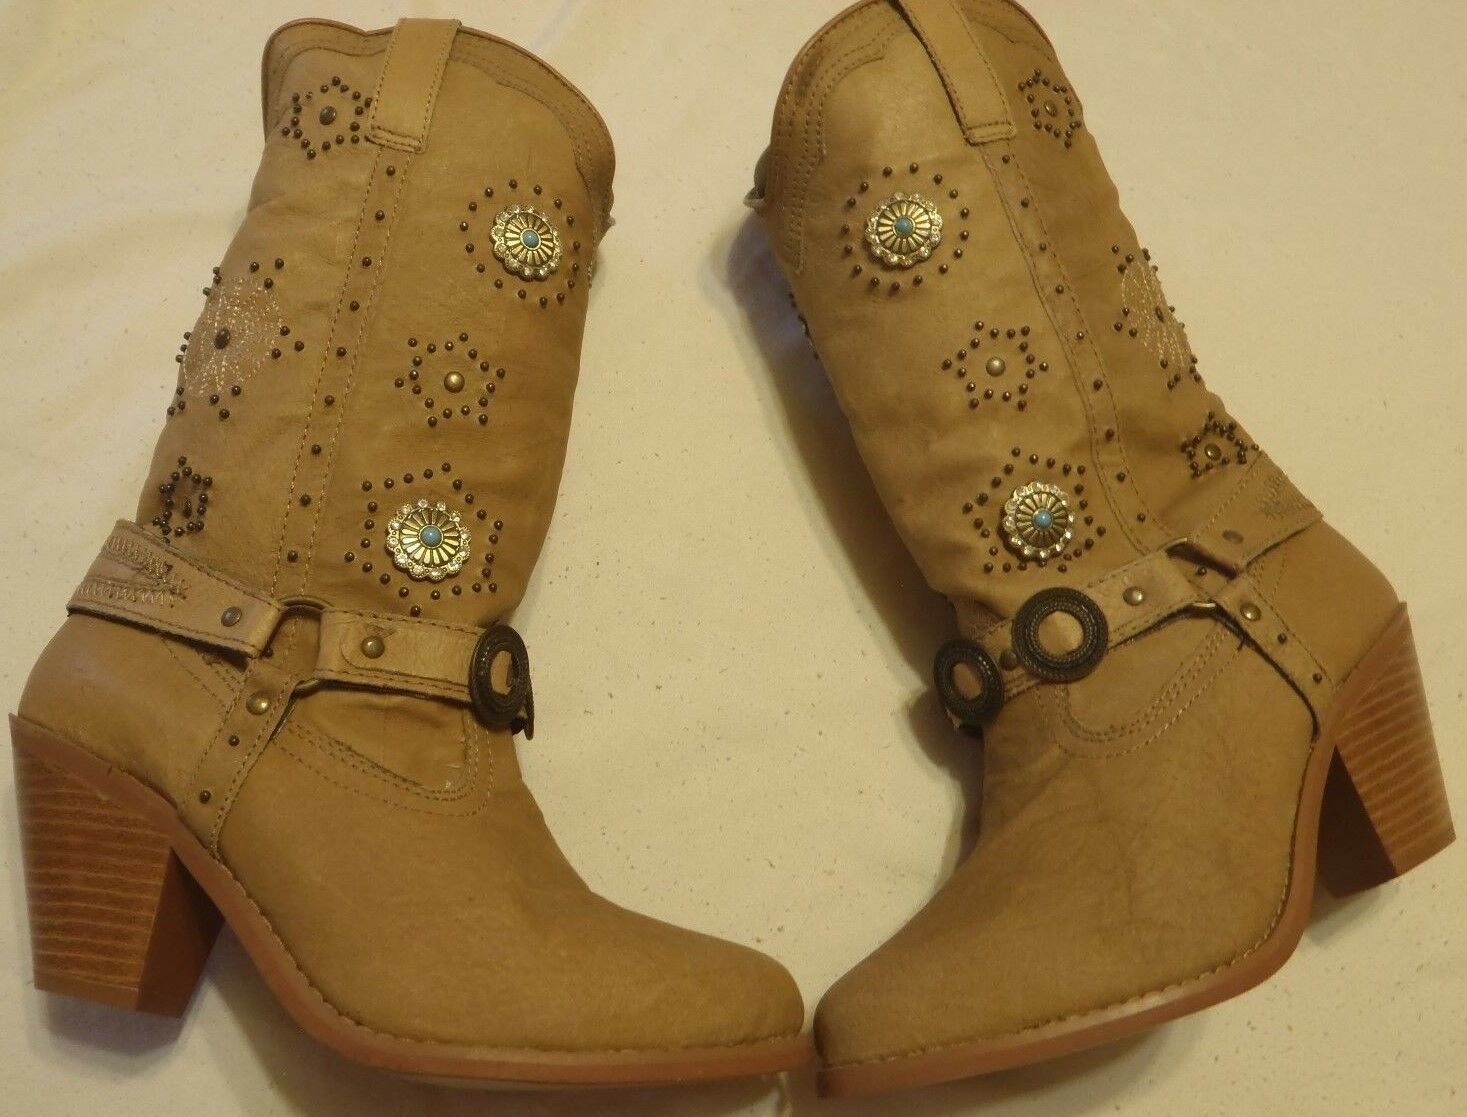 Dingo DI 566 Boots Women's Size 6 1 2 2 2  Tan Leather Western Fashion Dancer Boots 381f95